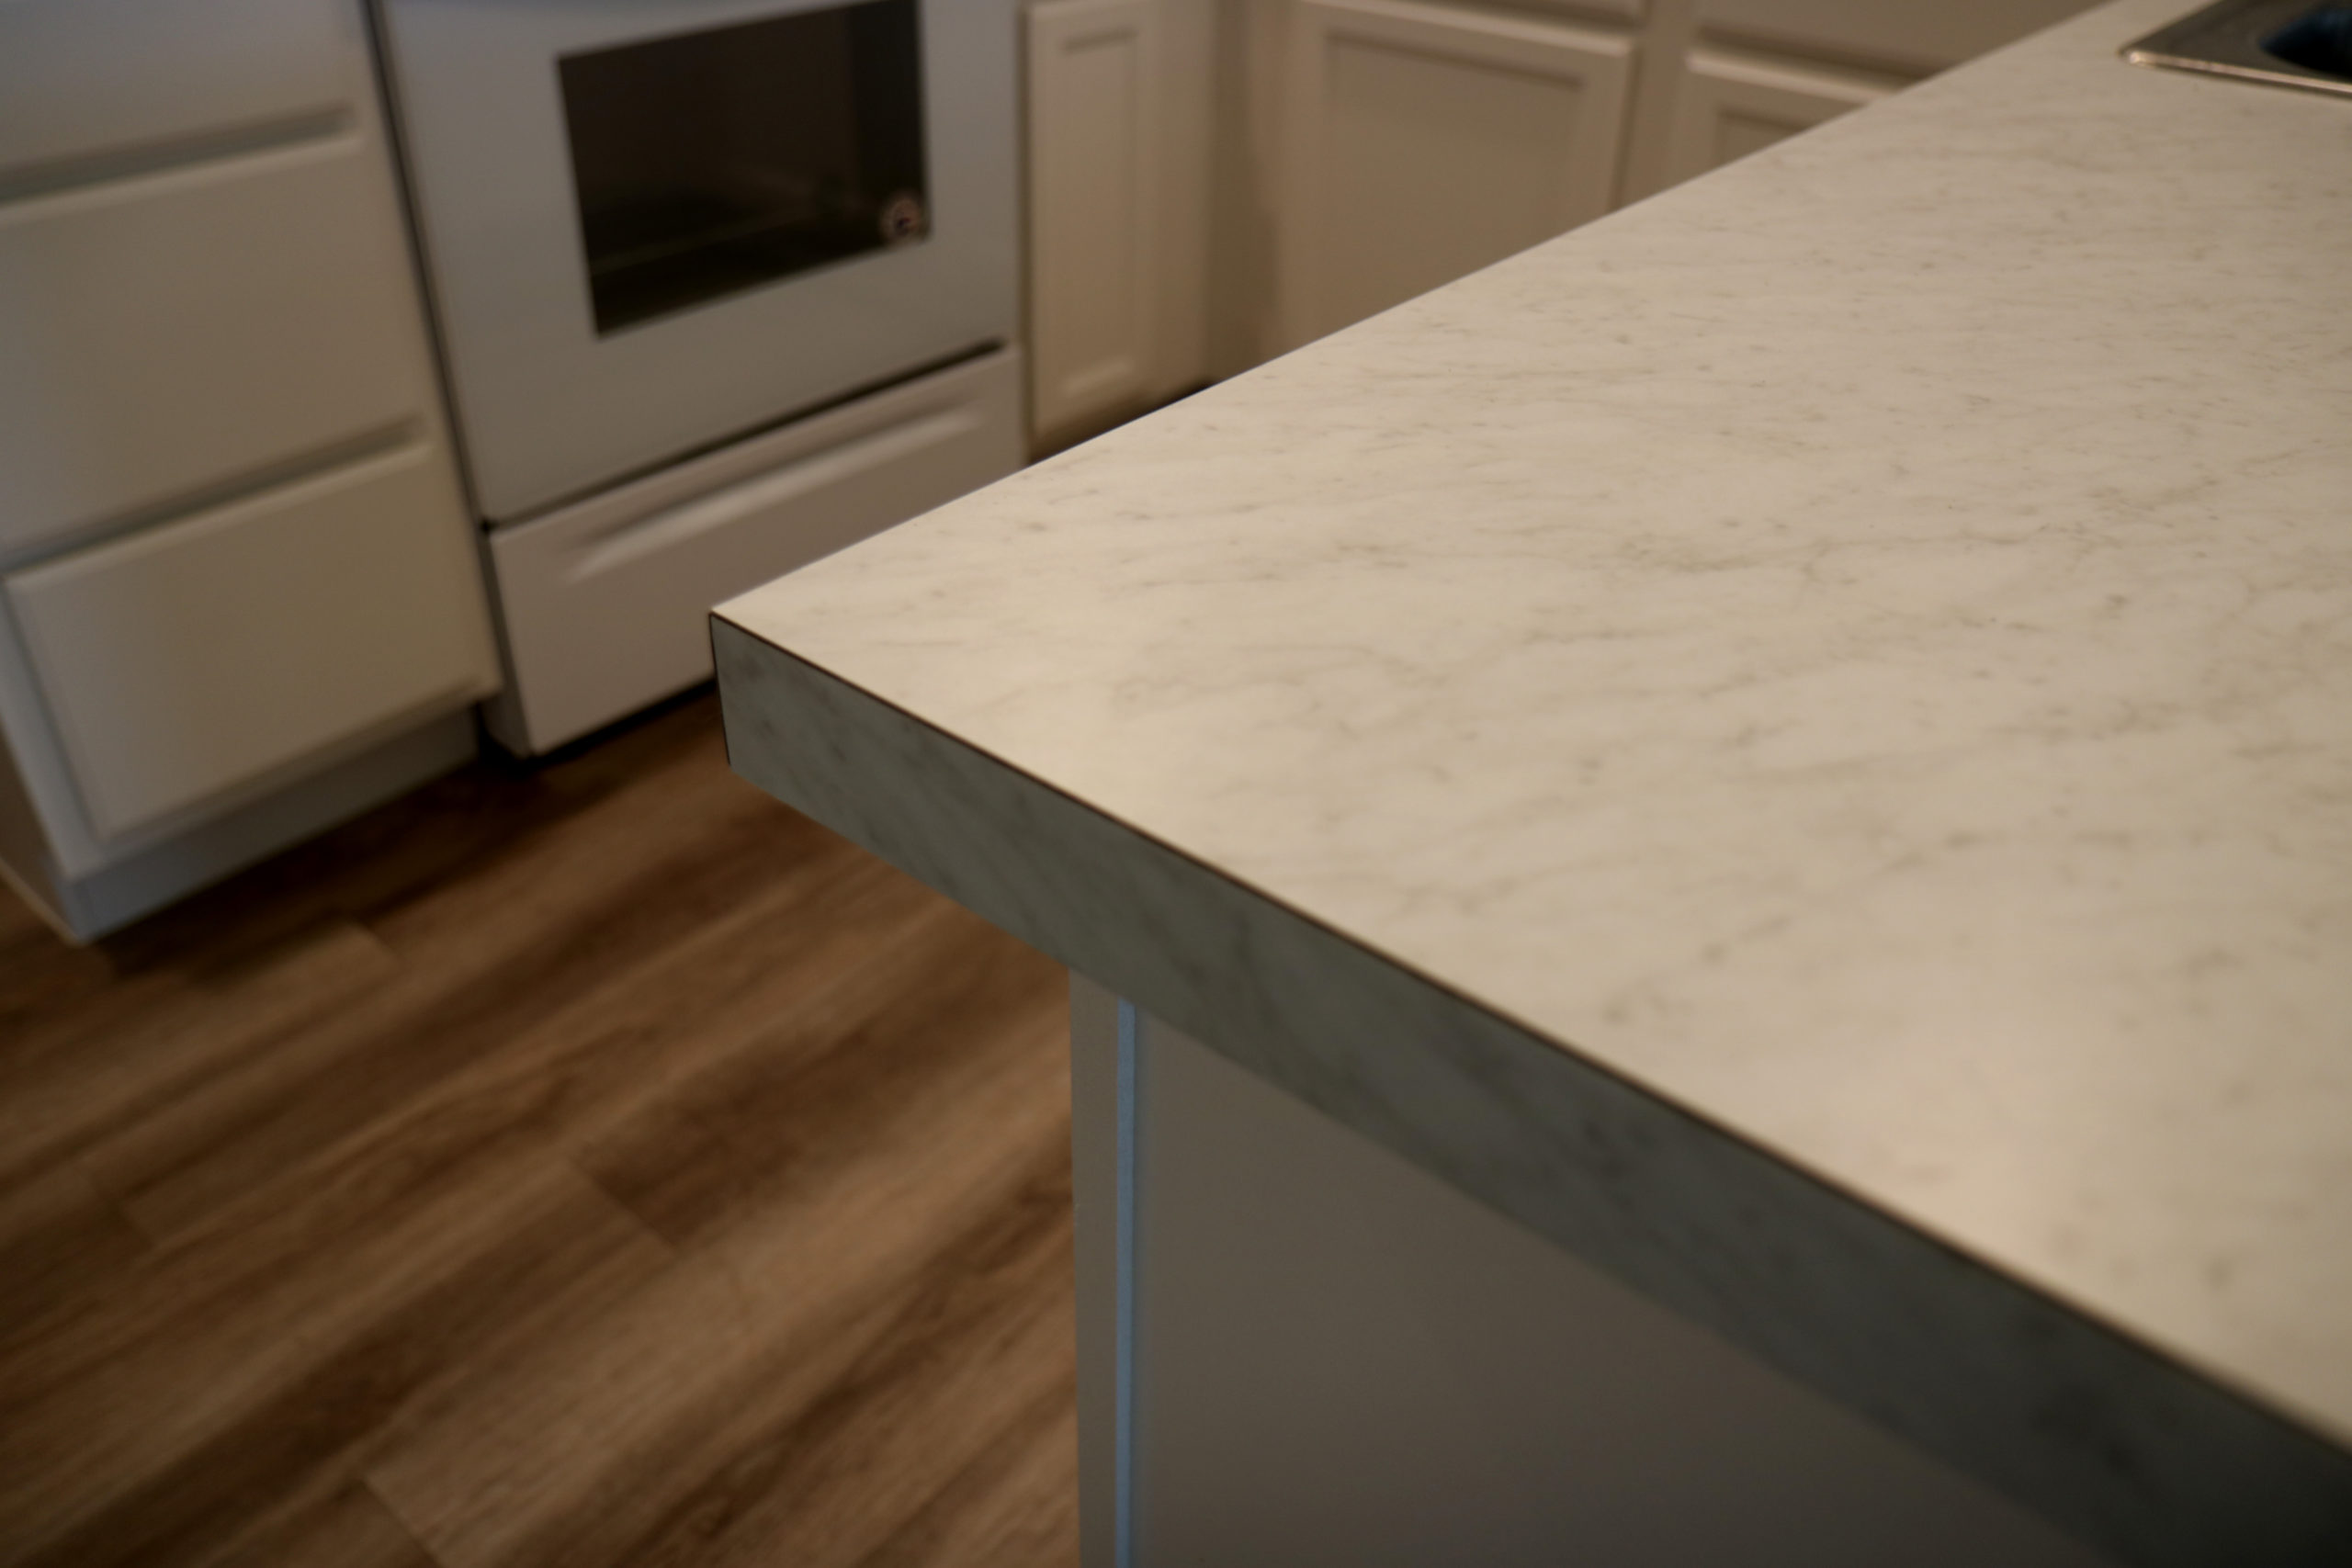 A close-up of white cabinetry and countertops in the Habitat Orlando community of Silver Pines Pointe.